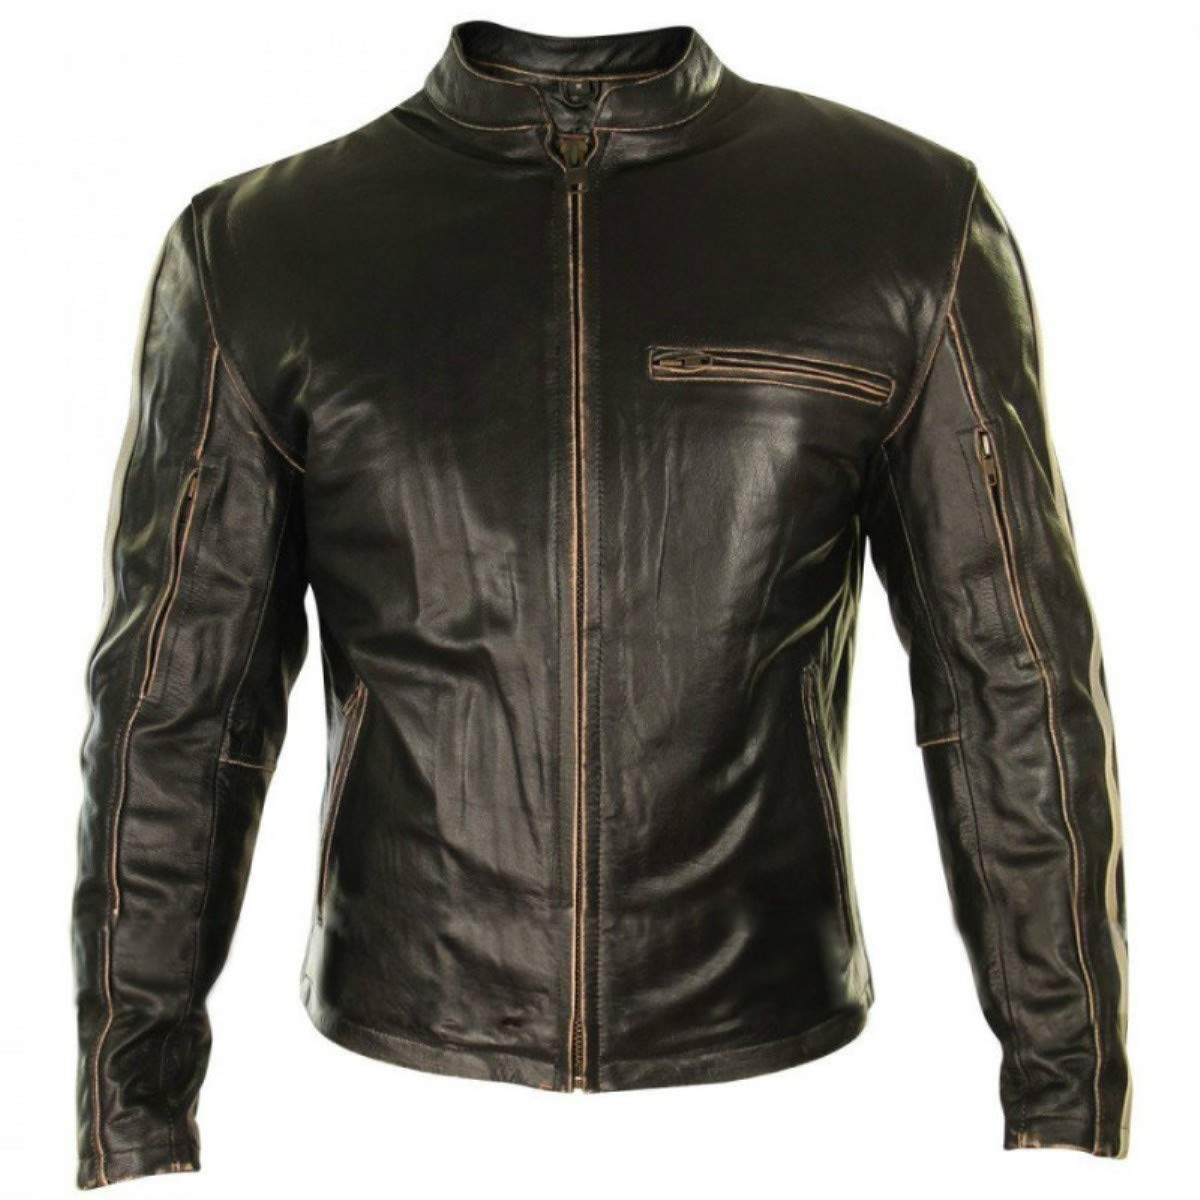 The Safest Motorcycle Jackets To Keep Your Skin